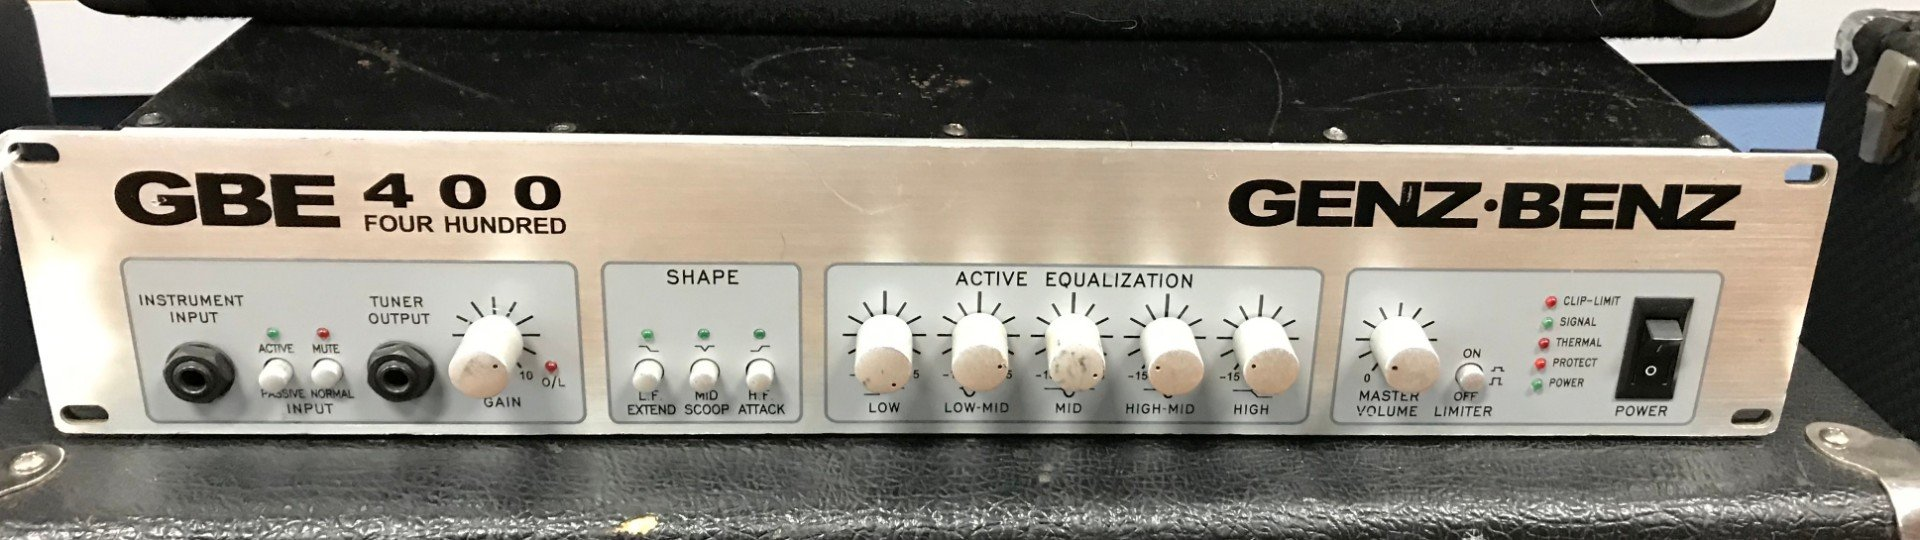 Used Genz Benz GBE 400 bass amplifier